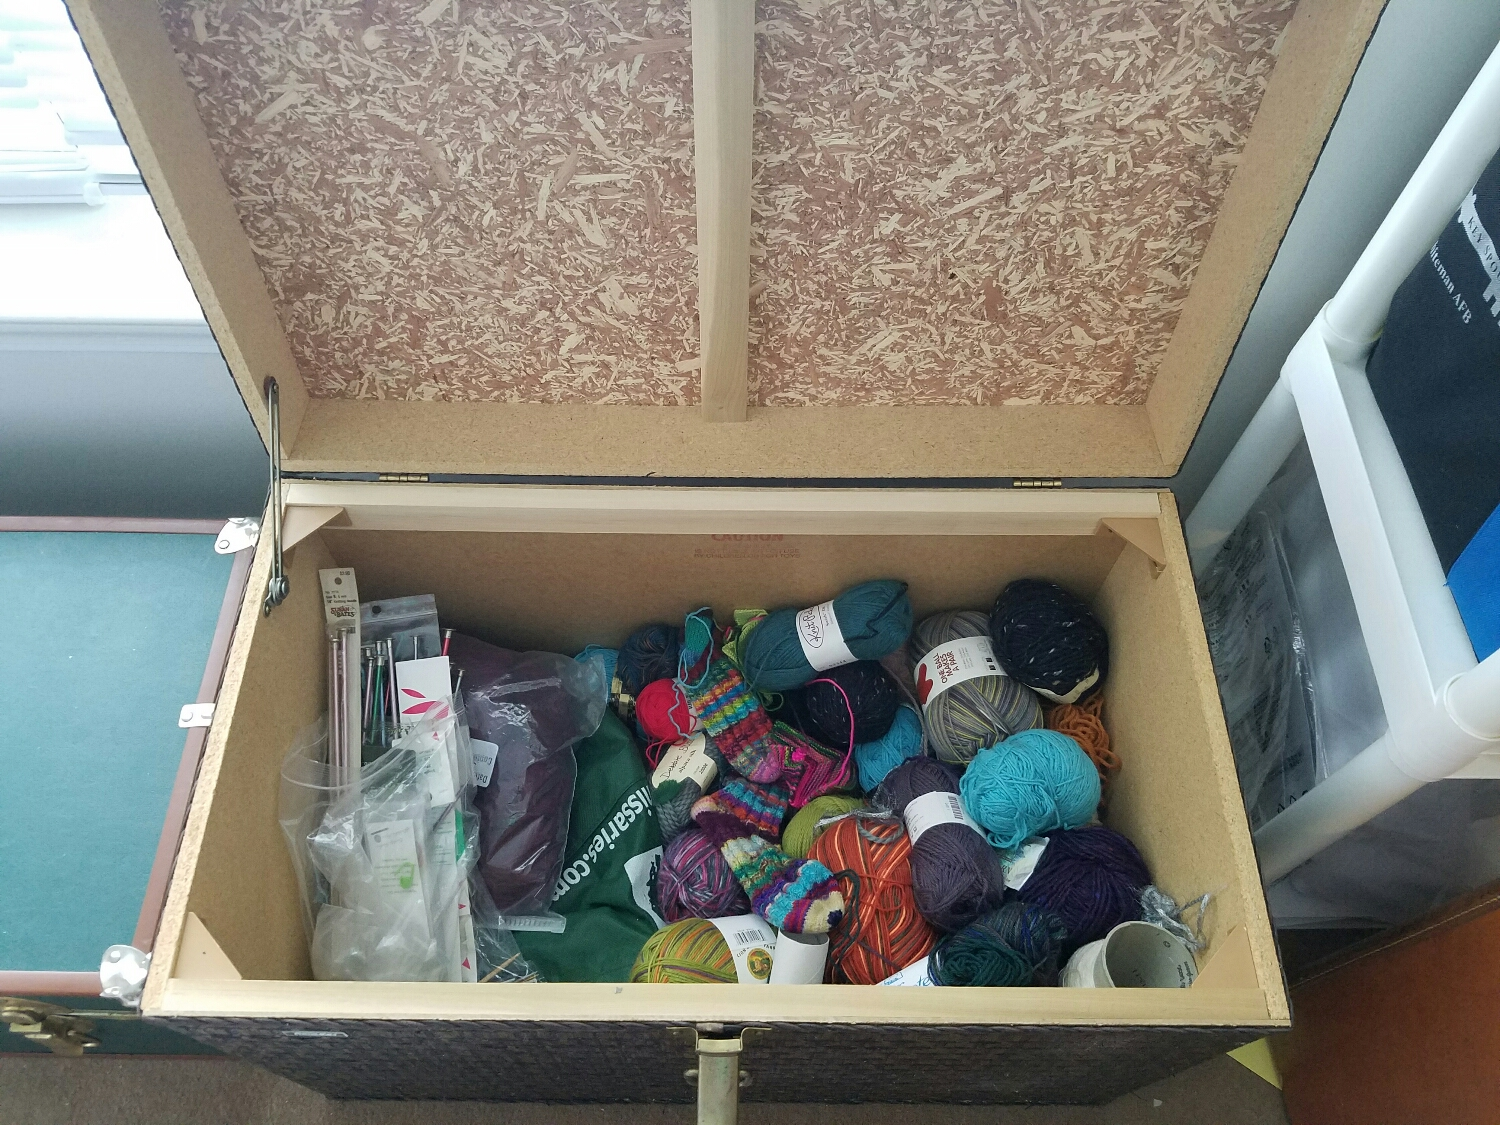 My yarn collection has finally made it out of the laundry hamper and into a trunk from the garage.